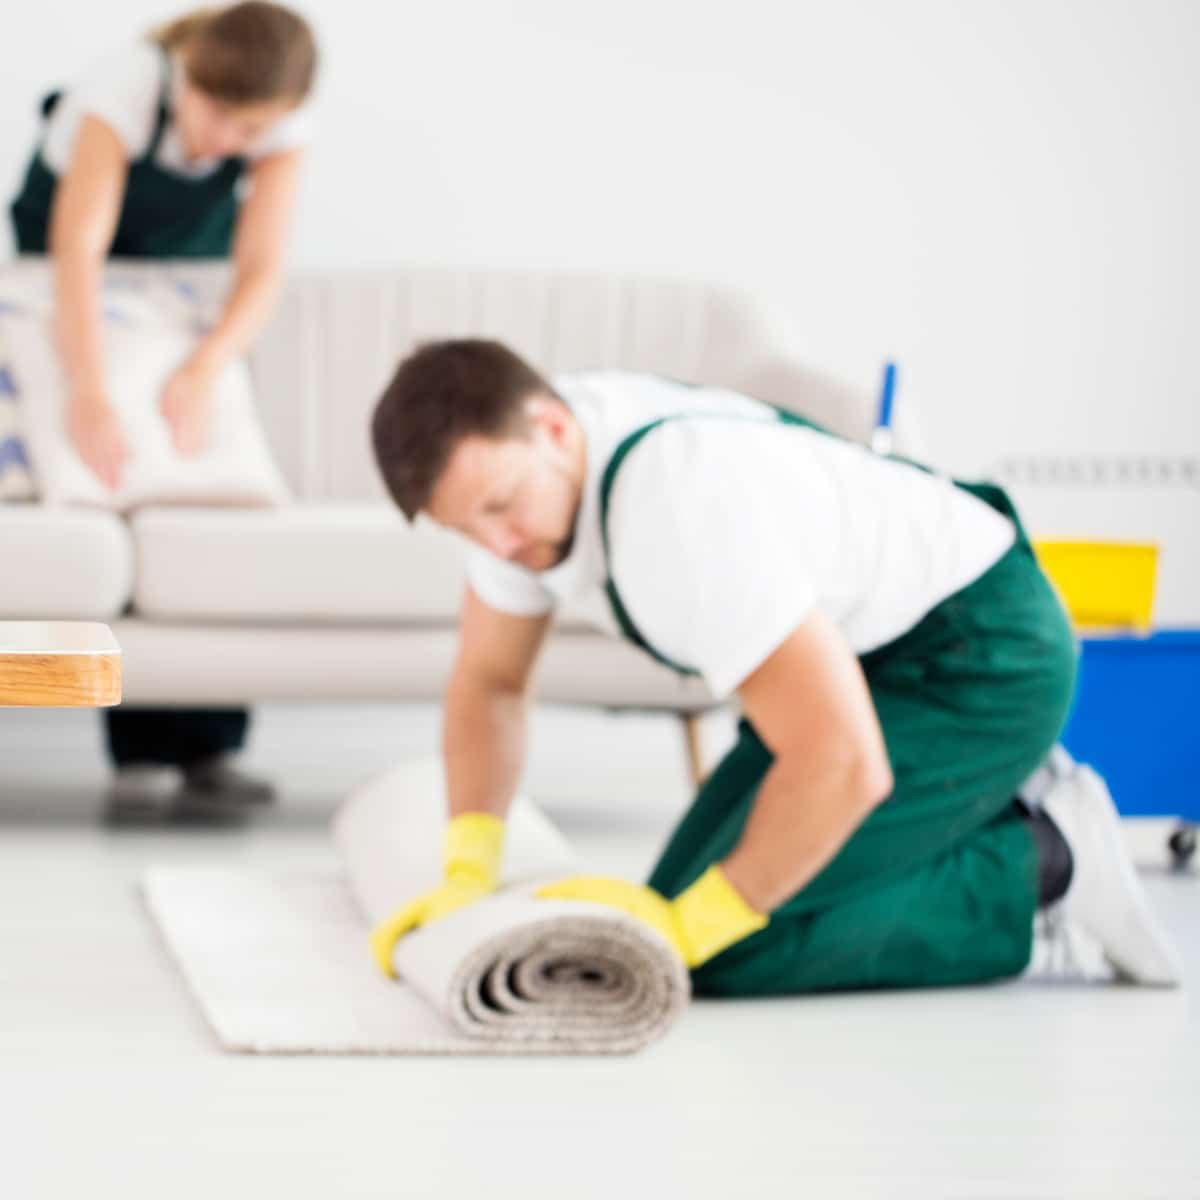 Professional Carpet Cleaning Irvine CA | Carpet Kings